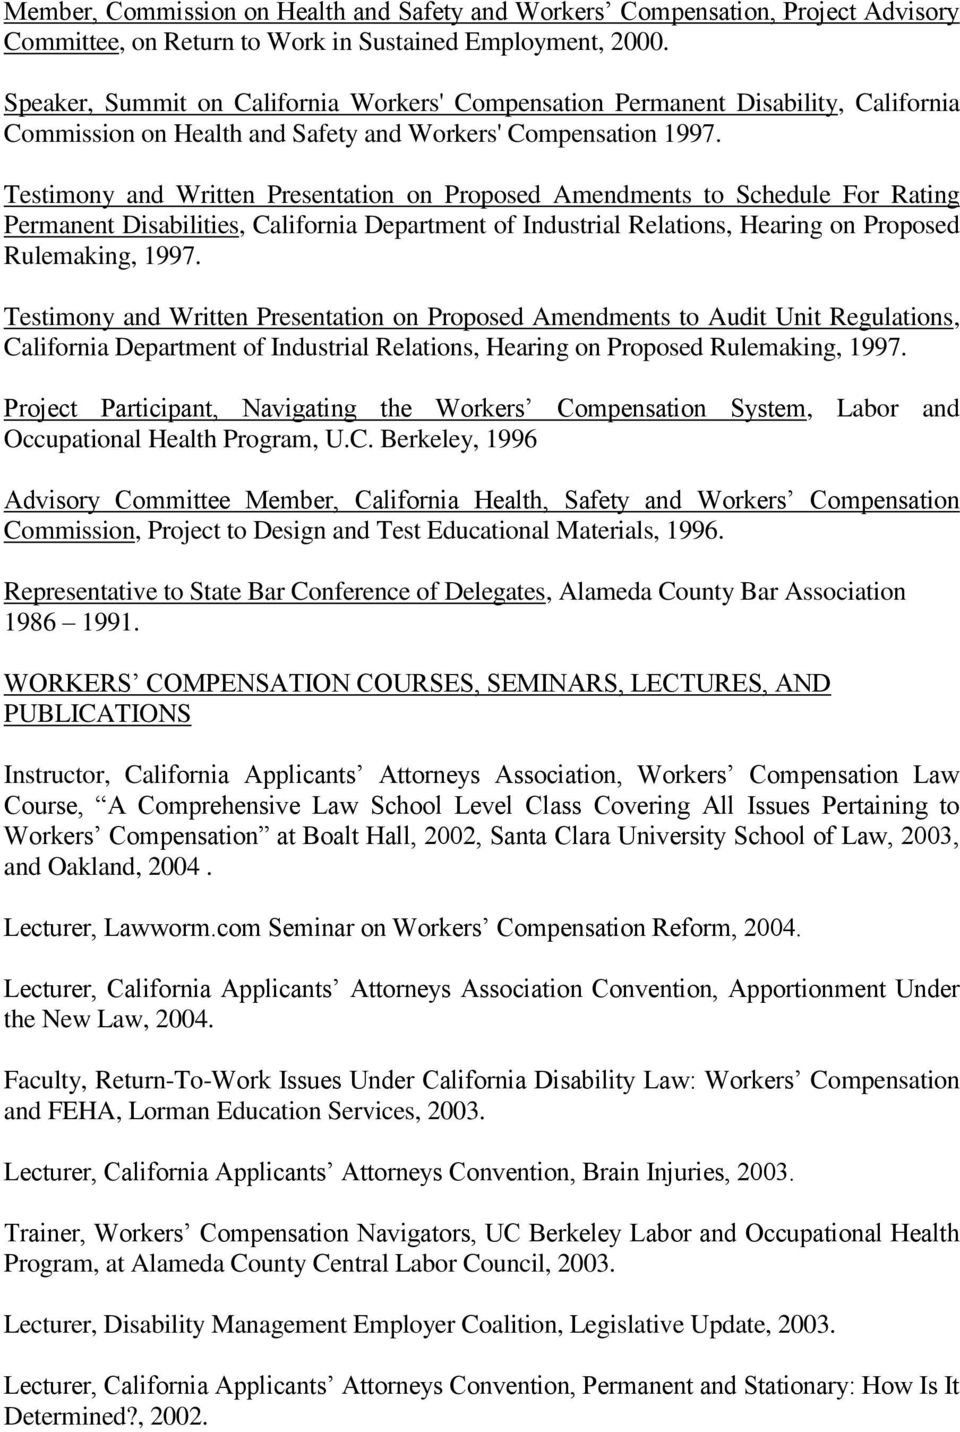 Testimony and Written Presentation on Proposed Amendments to Schedule For Rating Permanent Disabilities, California Department of Industrial Relations, Hearing on Proposed Rulemaking, 1997.